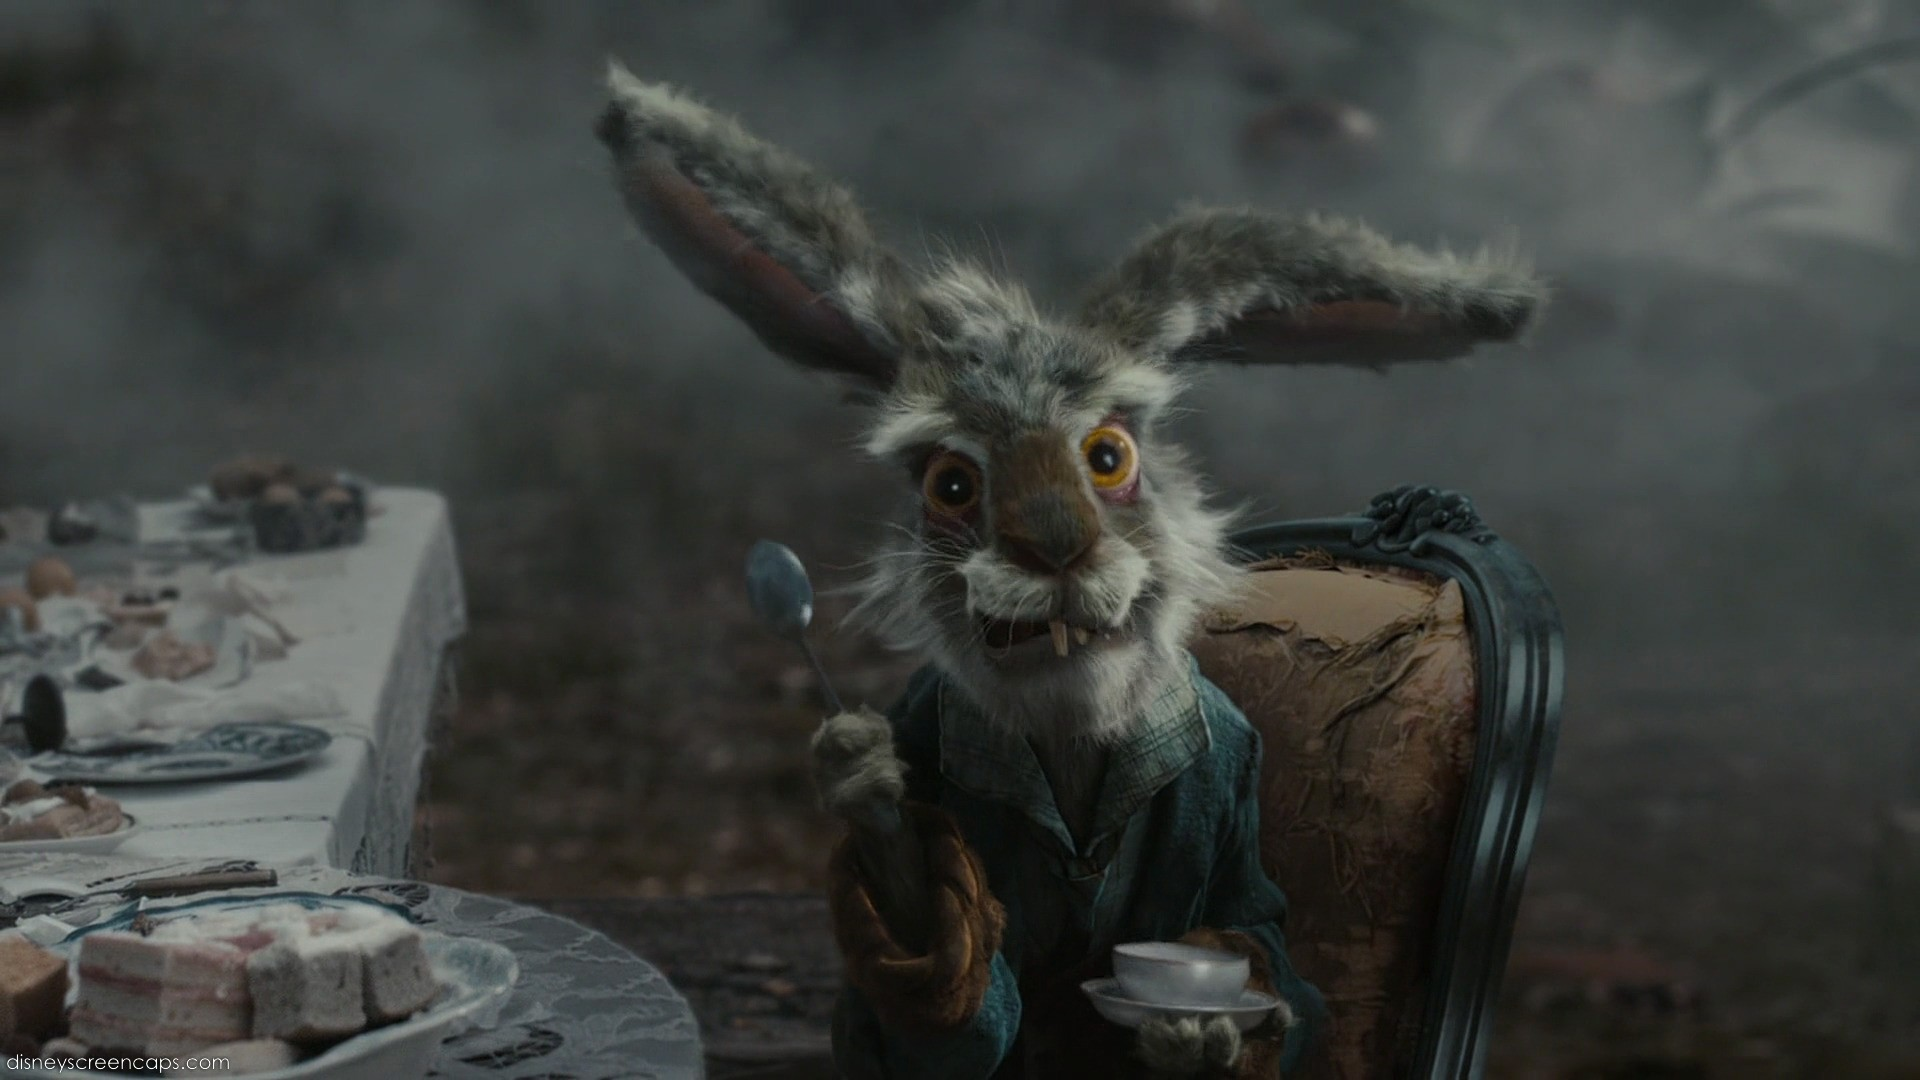 mad march hare - March Hare Photo (33179597) - Fanpop